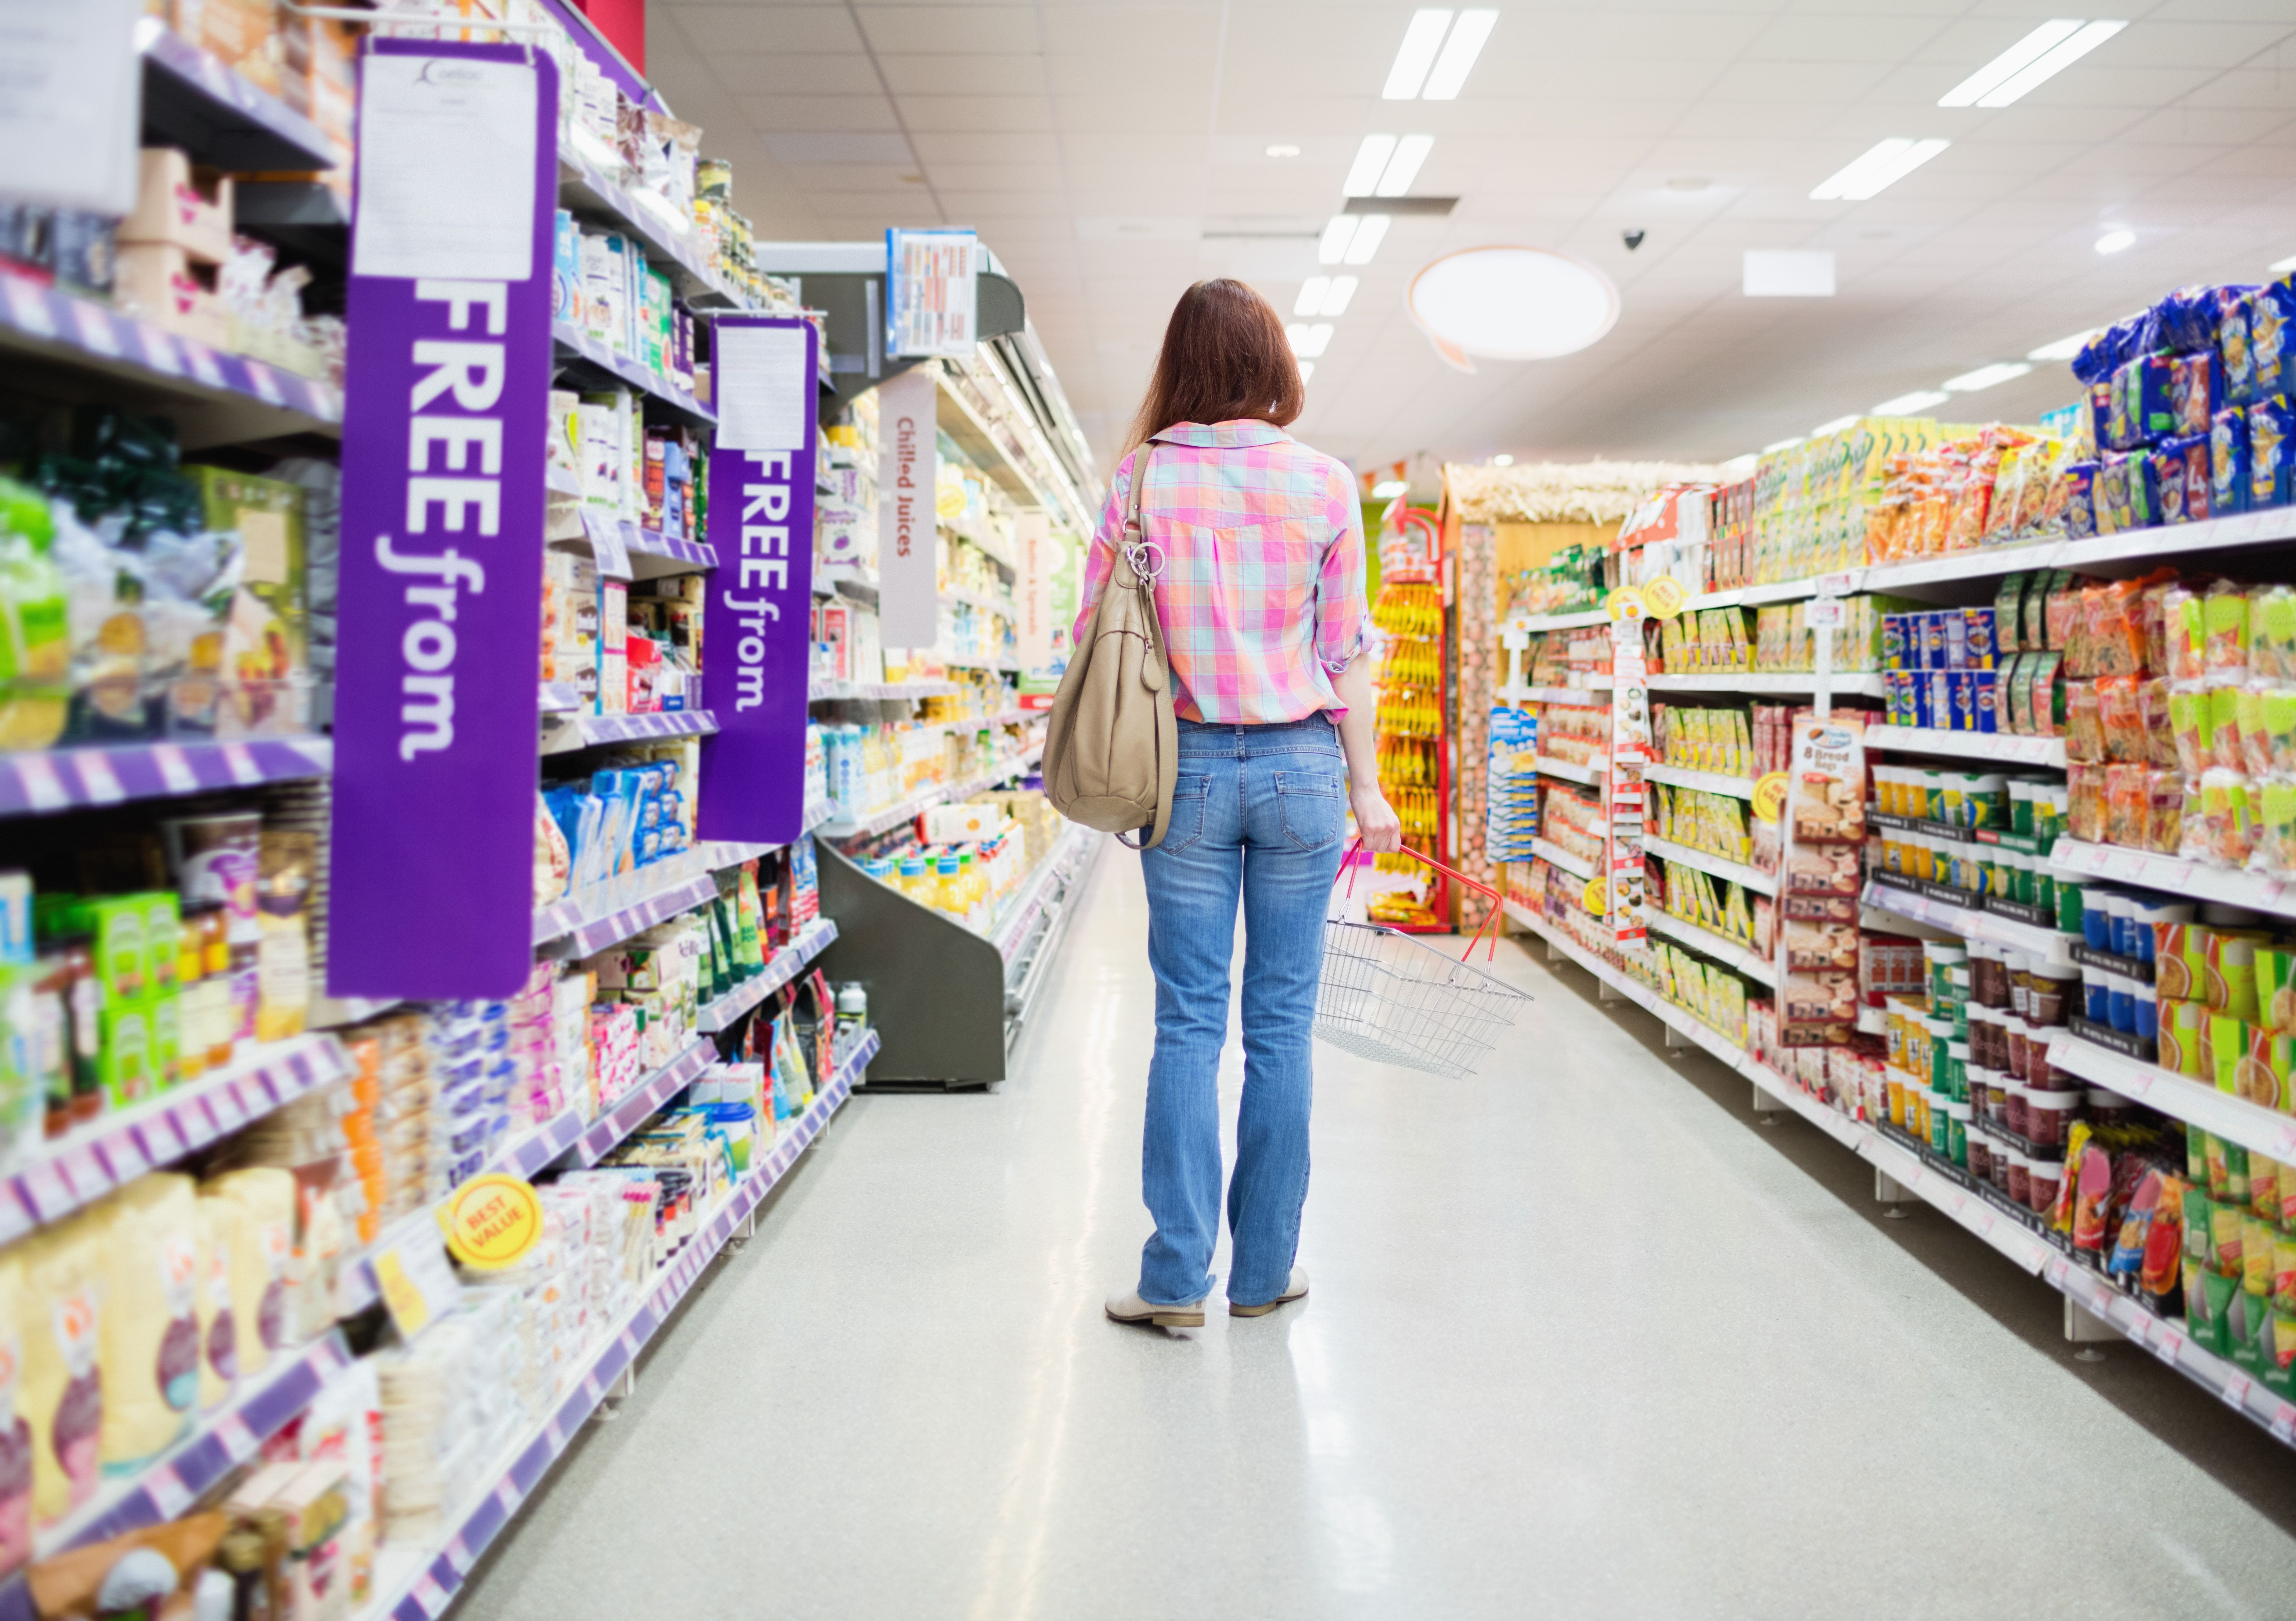 PROCESSED FOODS LINKED TO HEART DISEASE AND HEIGHTENED MORTALITY RISK: